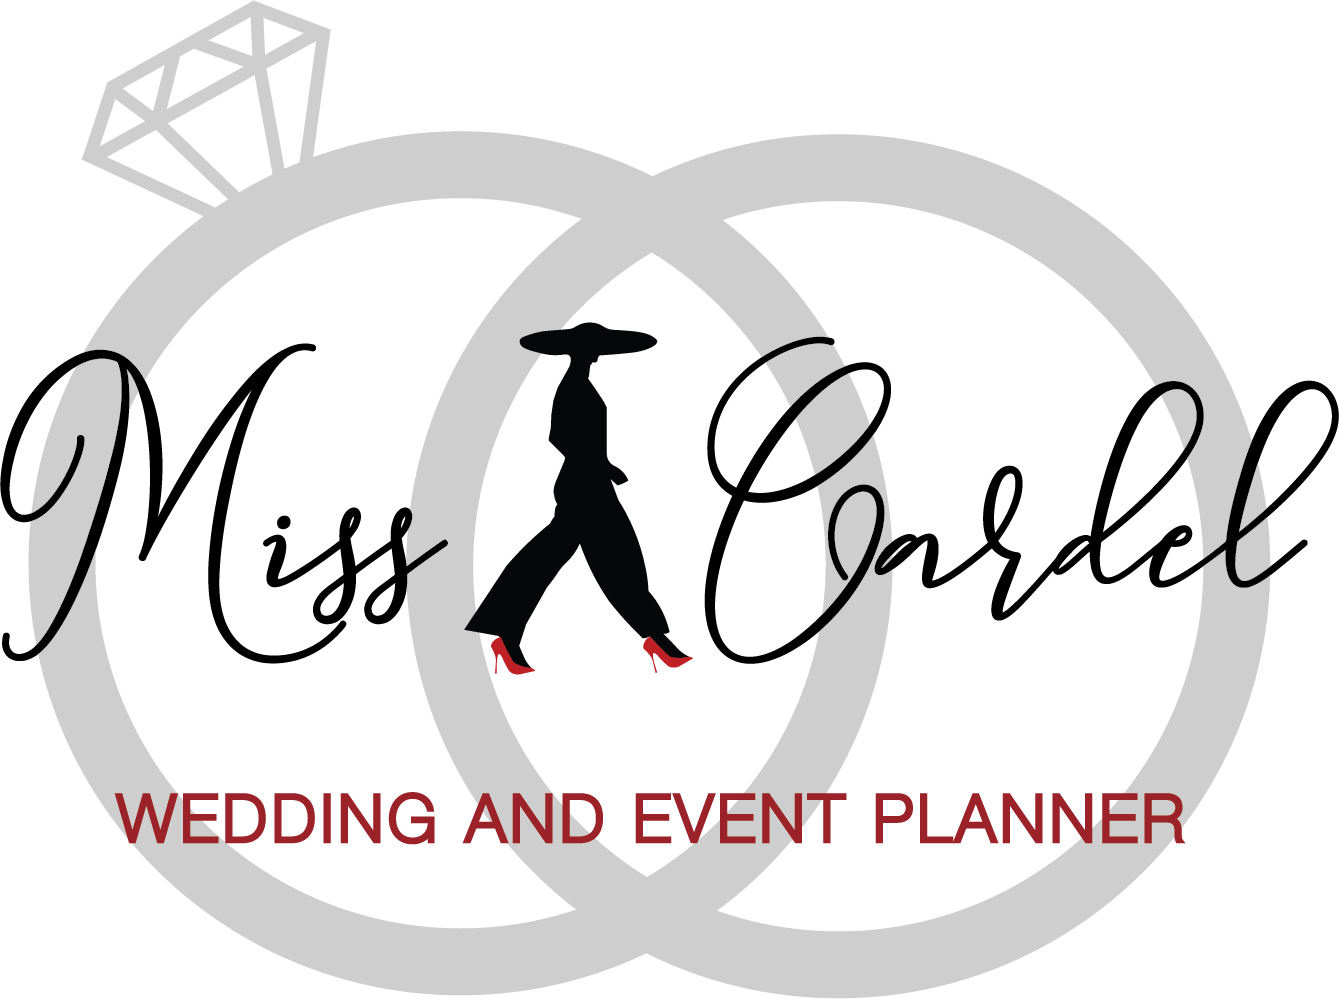 Ms. Cardel Wedding and Event Planner